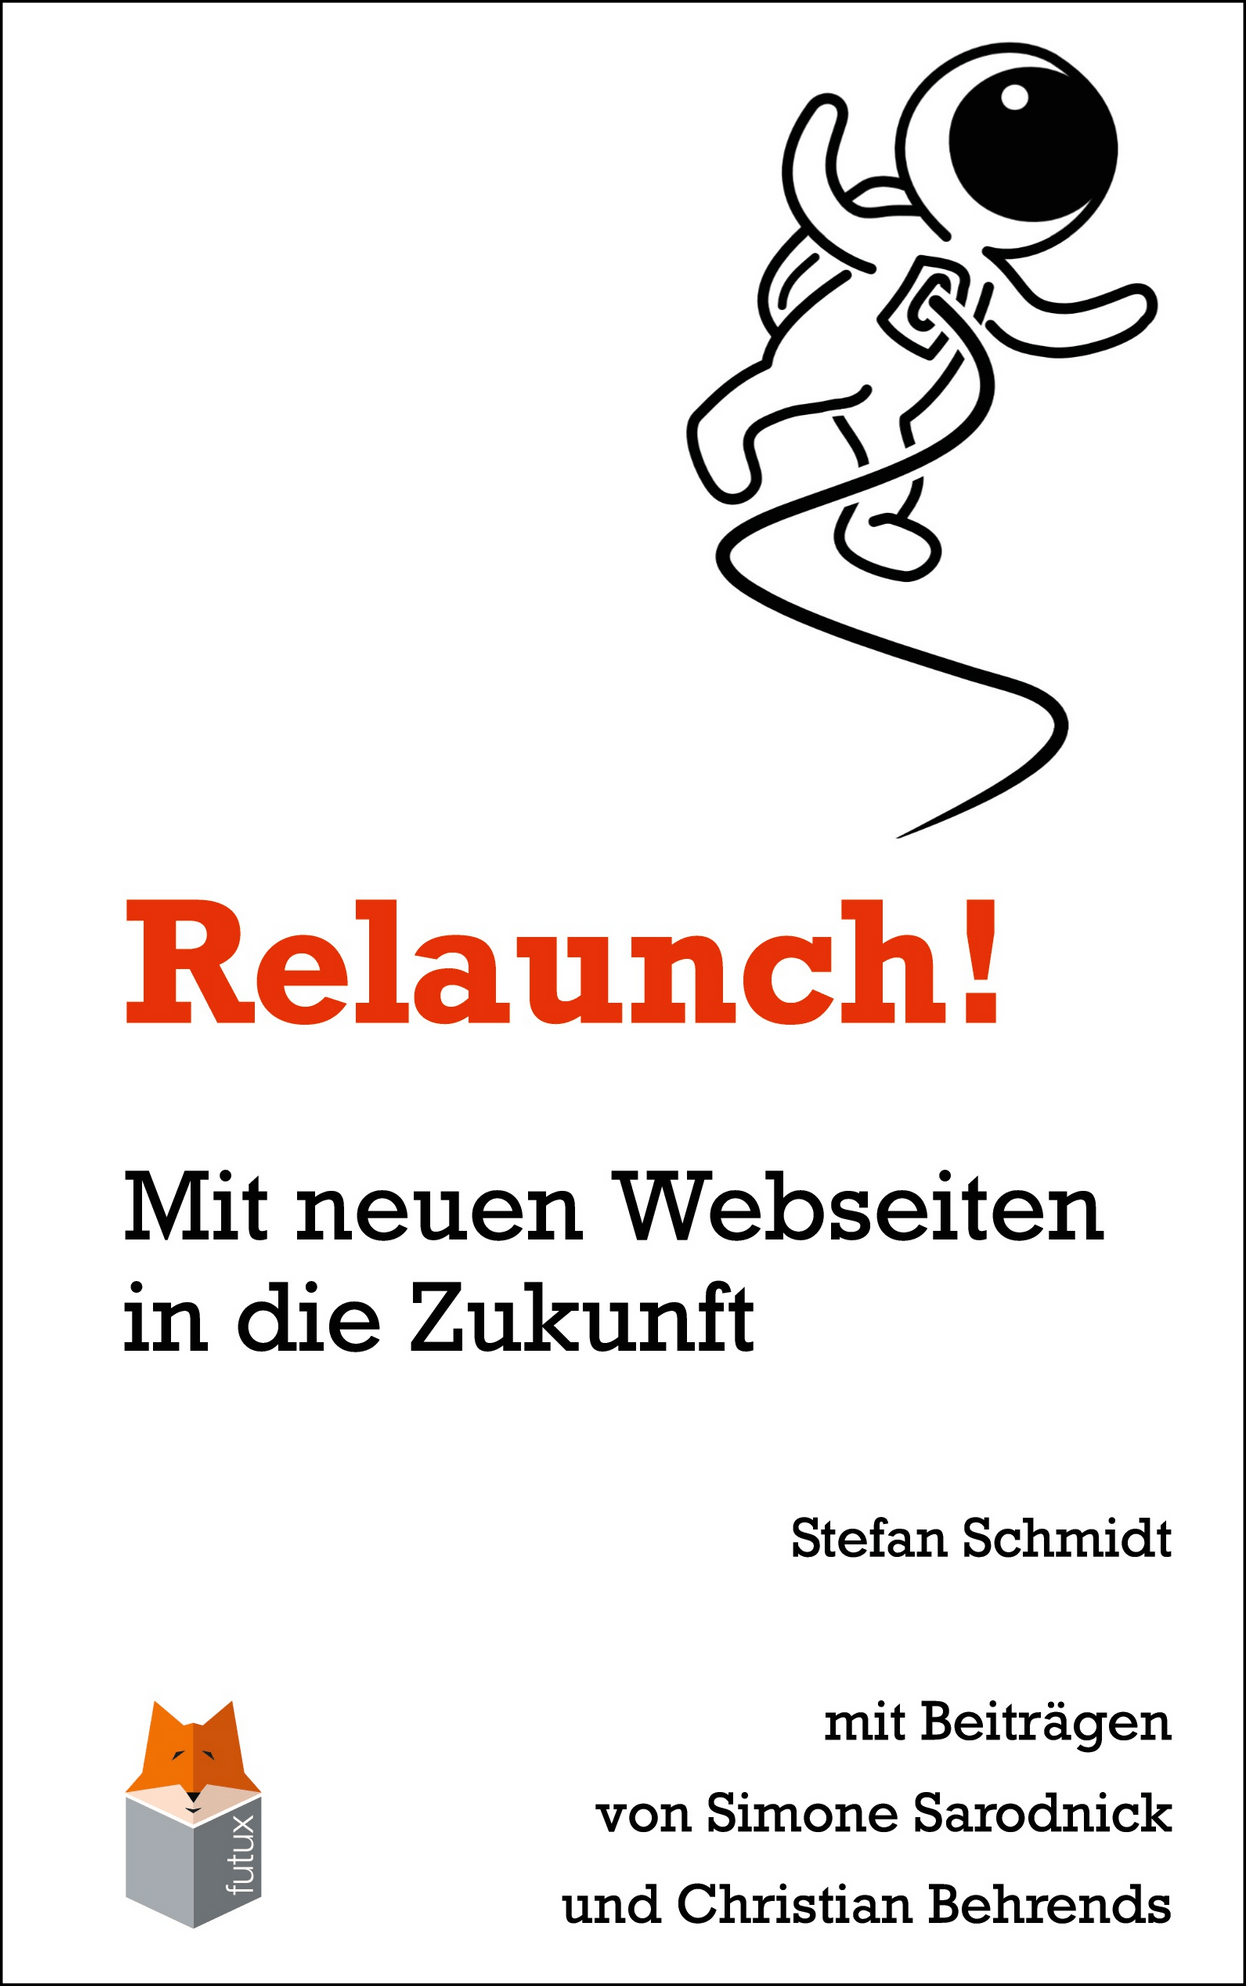 Relaunch! Buch mit Astronaut Cartoon